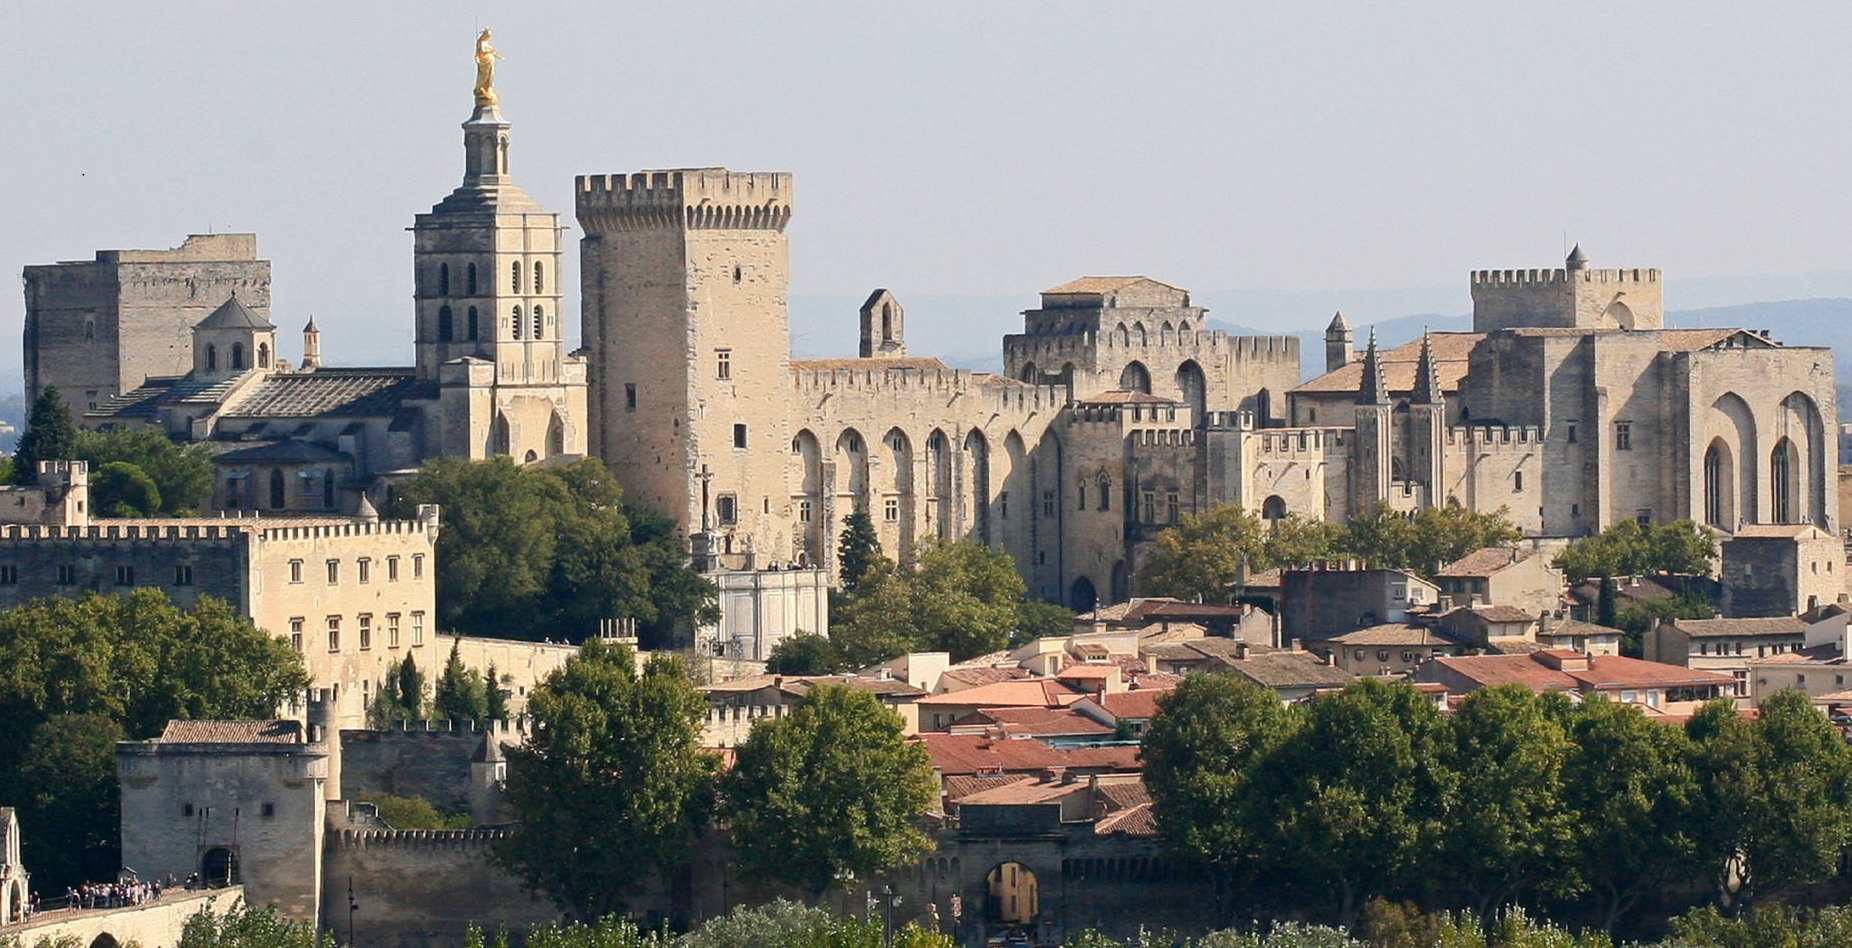 Palace of the Popes in Avignon The farmhouse of the Chouette Gites and Bed and Breakfast in Saint Remy de ProvencePalace of the Popes in Avignon The farmhouse Mas de la Chouette Bed and Breakfast in Saint Remy de Provence